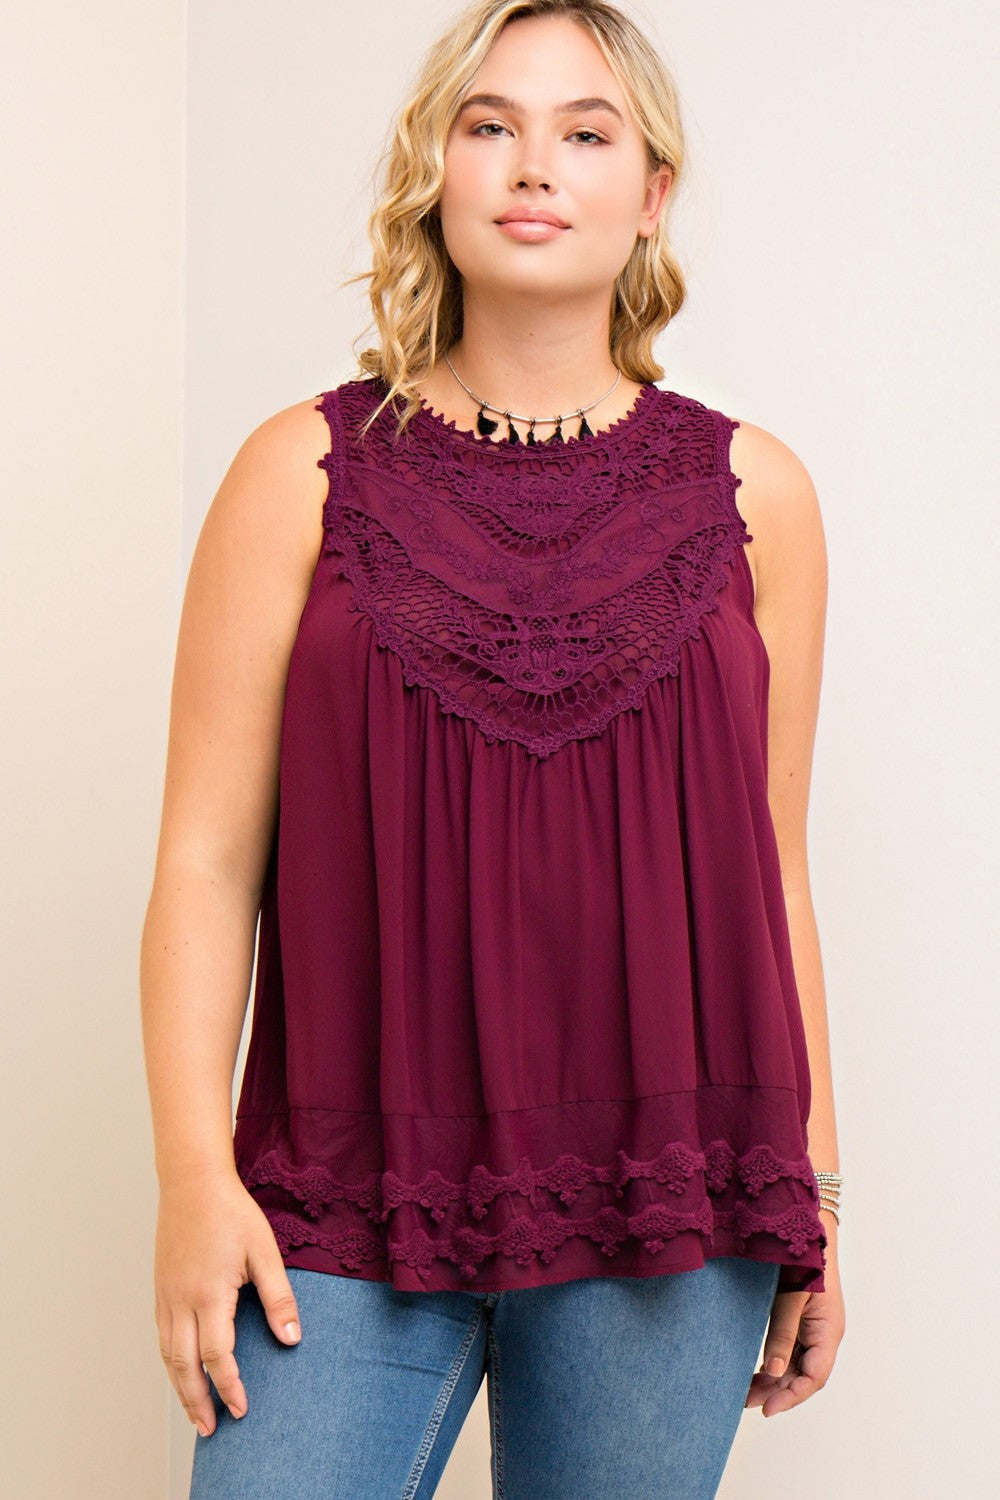 Front view young plus size woman wearing wine colored sleeveless crochet trim top